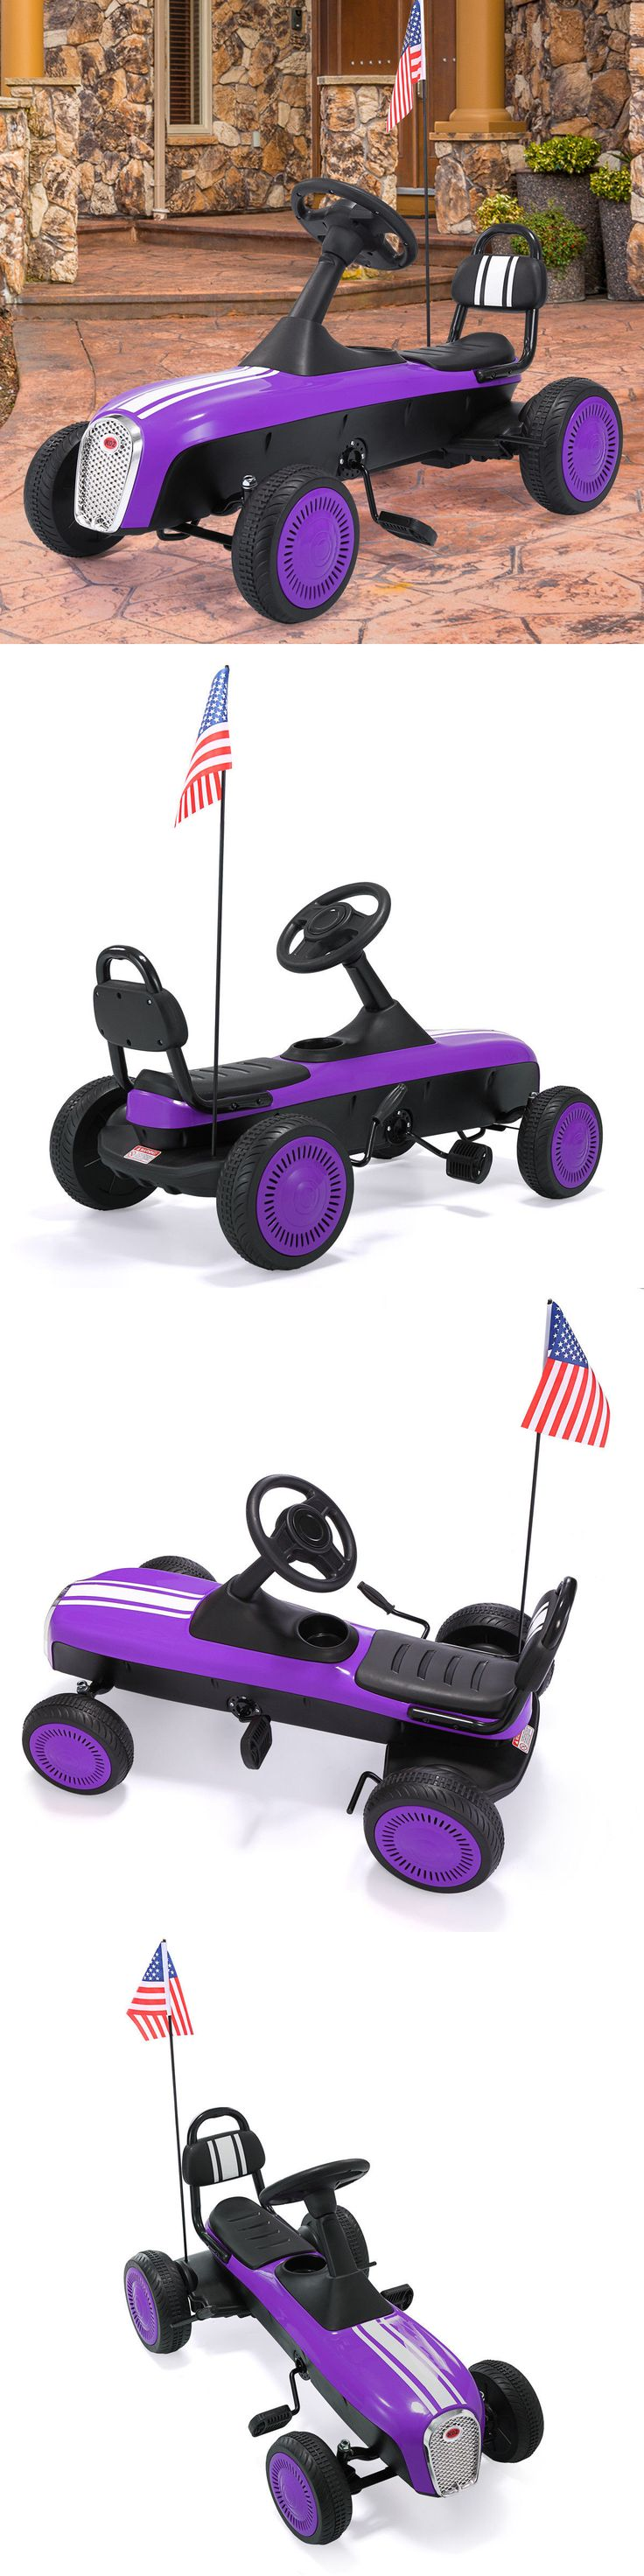 Benches 15281: Go Kart Pedal Powered Bike Kids Ride On 4 Wheels Racer Car Outdoor Purple Toy -> BUY IT NOW ONLY: $55.99 on eBay!